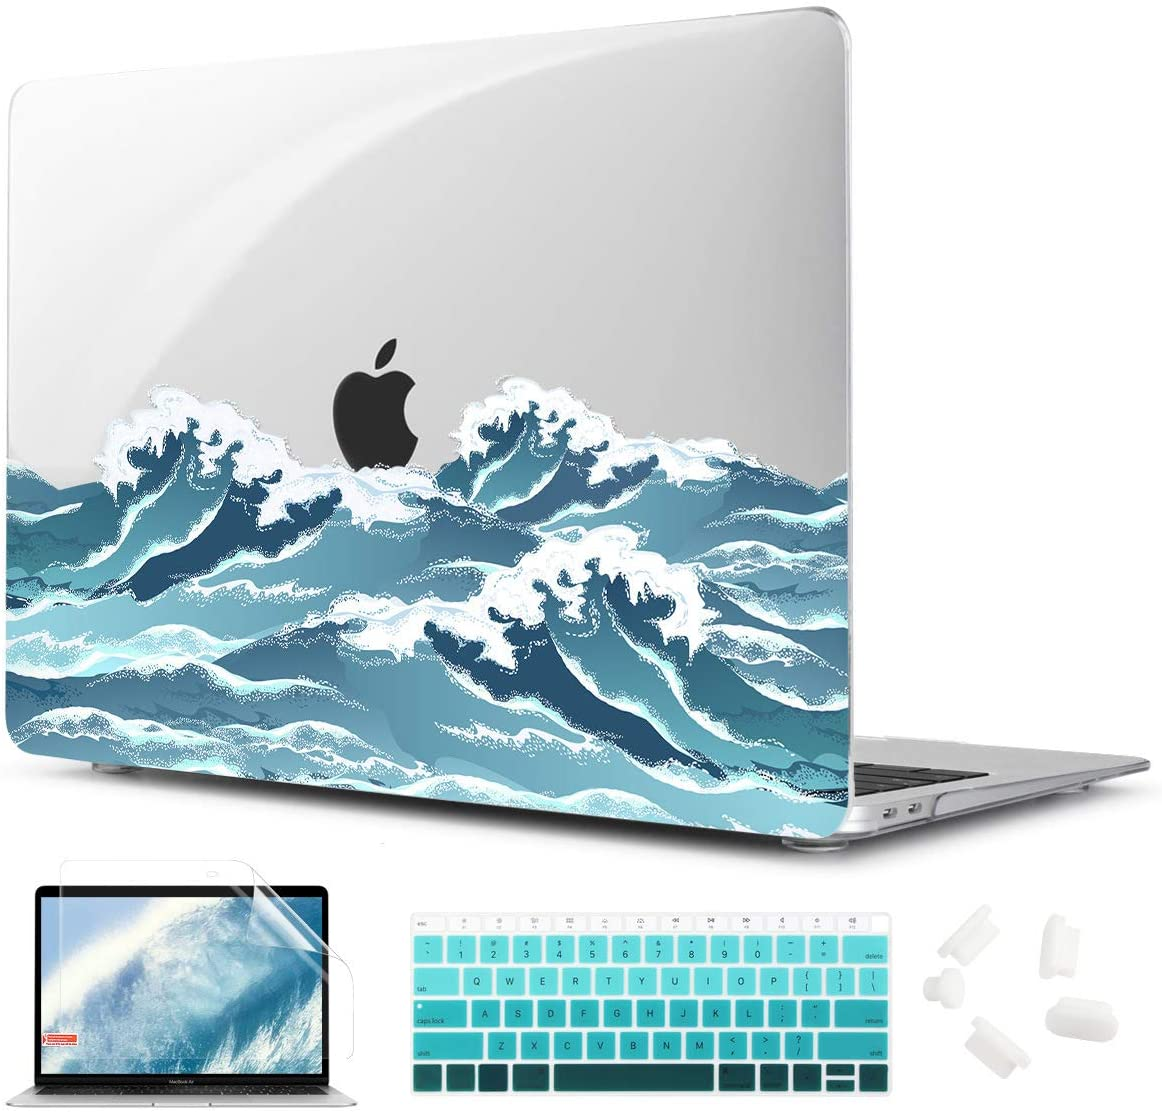 TwoL 4 in 1 Transparent Print Hard Shell Case for 2020 MacBook Air 13 inch Model A2179 A1932 - Ocean